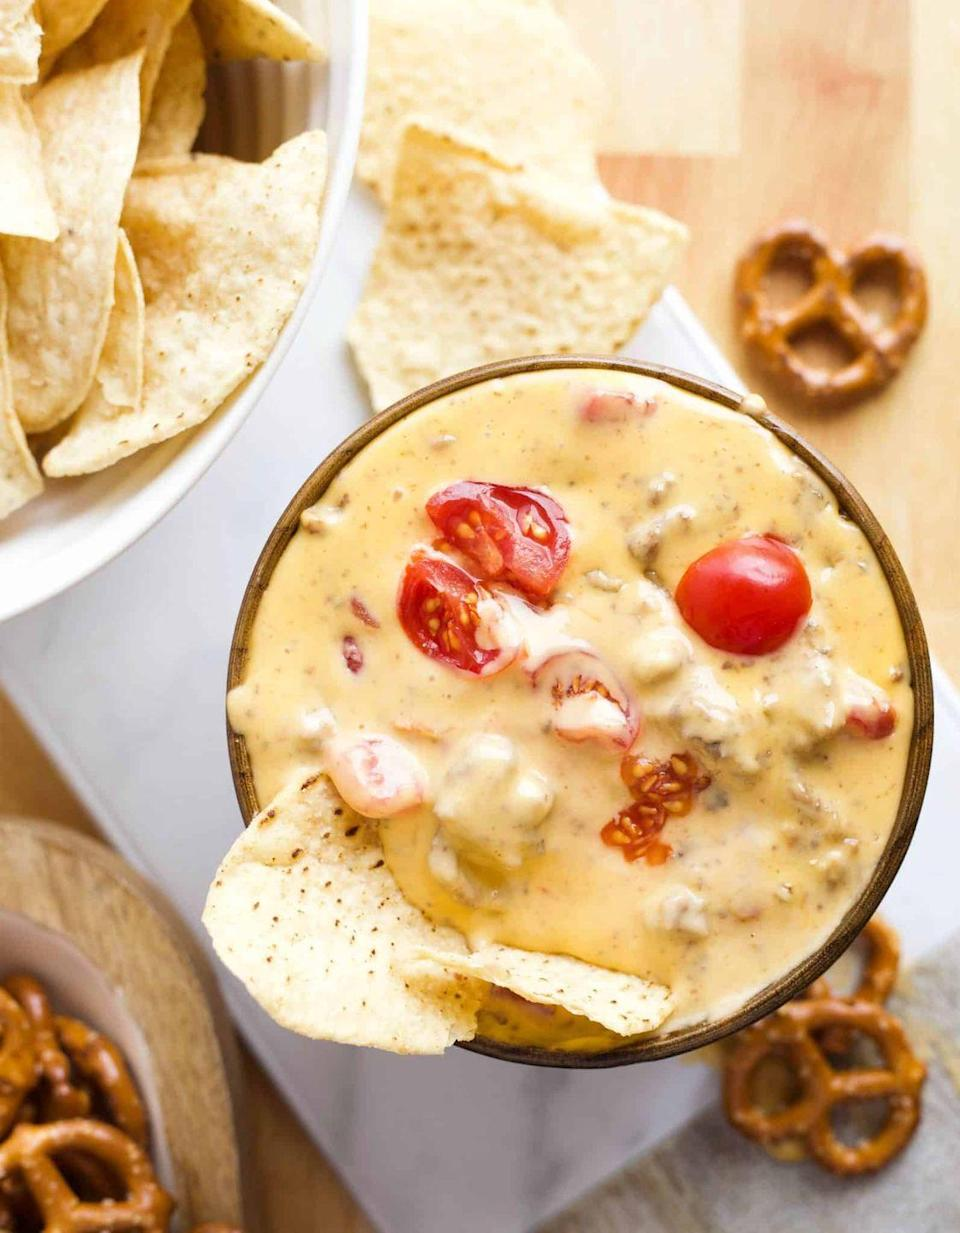 """<p>If you love a good juicy burger, you'll go crazy for this dip. Tip: You can brown the ground beef and onions in the slow cooker on the sauté function. </p><p><strong>Get the recipe at <a href=""""https://deliciousmadeeasy.com/2018/01/slow-cooker-cheeseburger-dip/"""" rel=""""nofollow noopener"""" target=""""_blank"""" data-ylk=""""slk:Delicious Made Easy"""" class=""""link rapid-noclick-resp"""">Delicious Made Easy</a>. </strong></p><p><strong><a class=""""link rapid-noclick-resp"""" href=""""https://go.redirectingat.com?id=74968X1596630&url=https%3A%2F%2Fwww.walmart.com%2Fsearch%2F%3Fquery%3Dpioneer%2Bwoman%2Bbowl&sref=https%3A%2F%2Fwww.thepioneerwoman.com%2Ffood-cooking%2Fmeals-menus%2Fg37397047%2Fslow-cooker-dips%2F"""" rel=""""nofollow noopener"""" target=""""_blank"""" data-ylk=""""slk:SHOP BOWLS"""">SHOP BOWLS</a><br></strong></p>"""